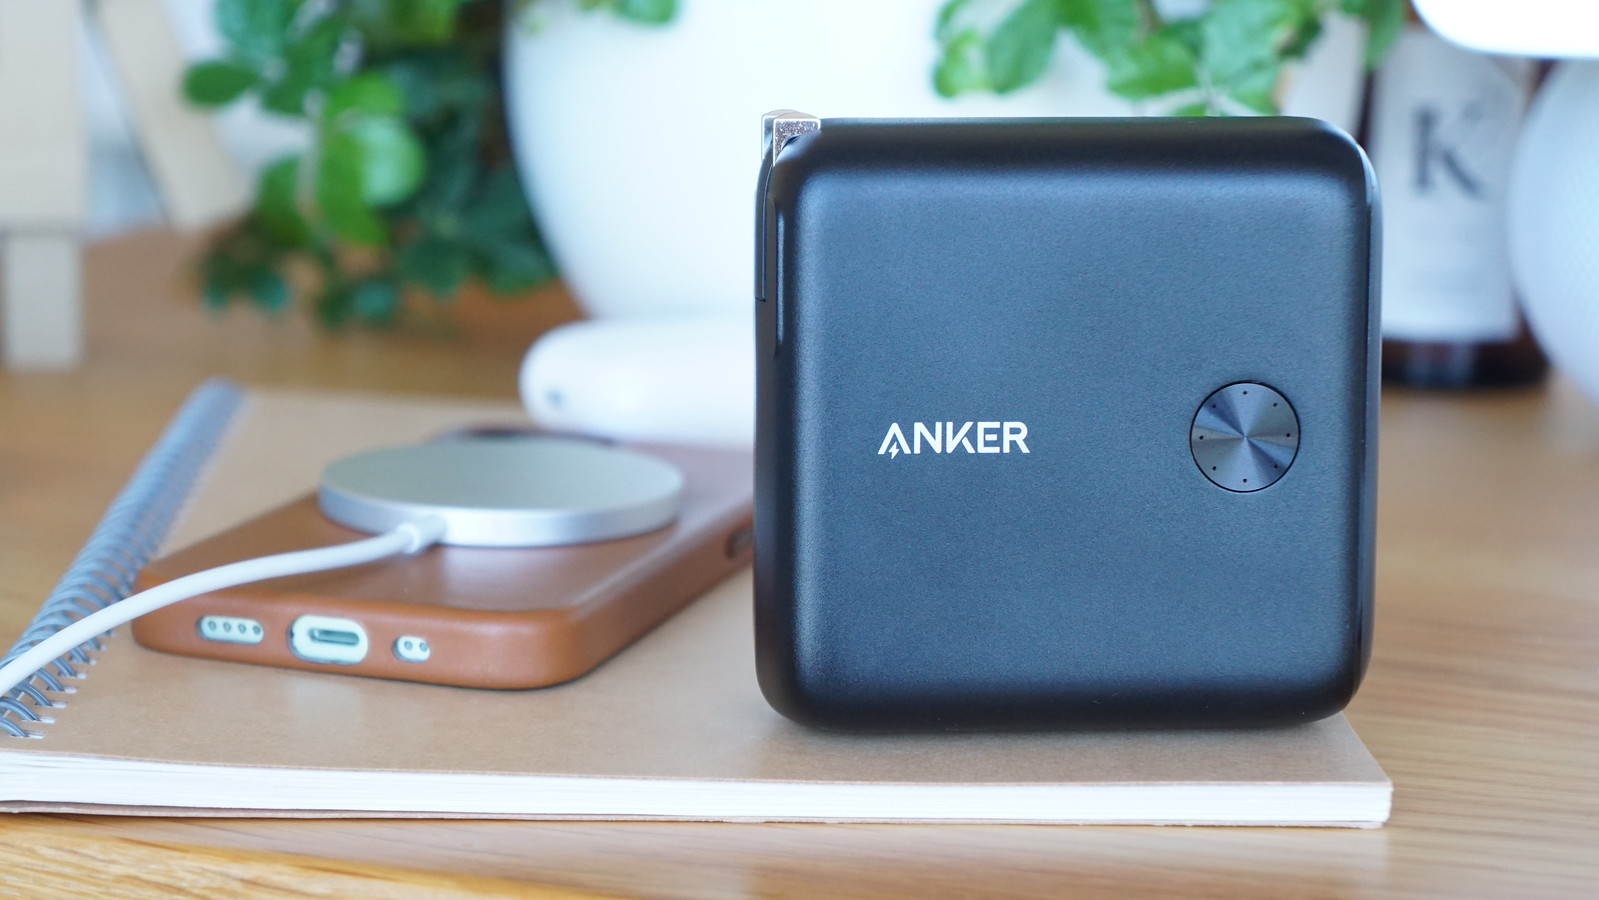 「Anker PowerCore Fusion 10000」レビュー。容量倍増モバイルバッテリー+充電器